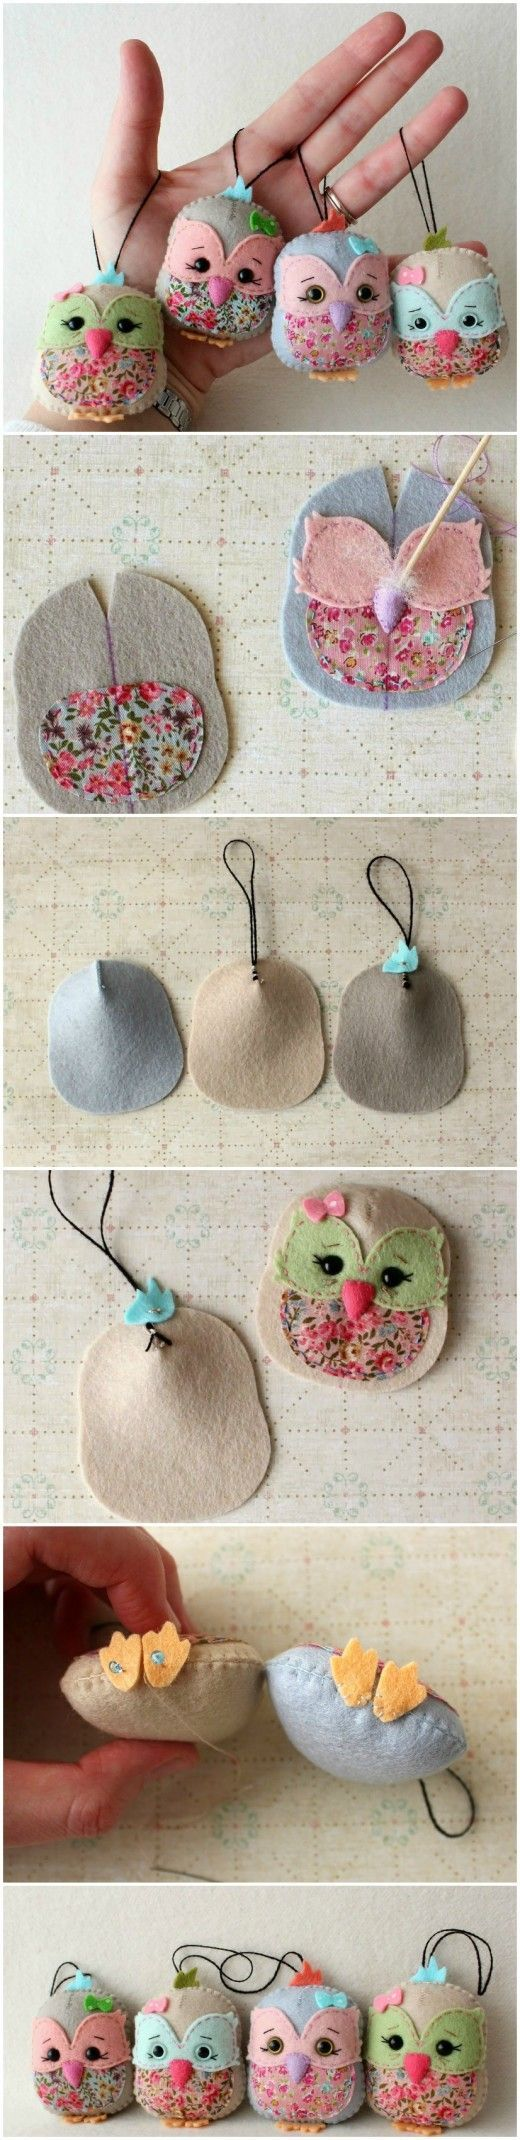 DIY Projects for You to Enjoy Winter at Home - lilostyle